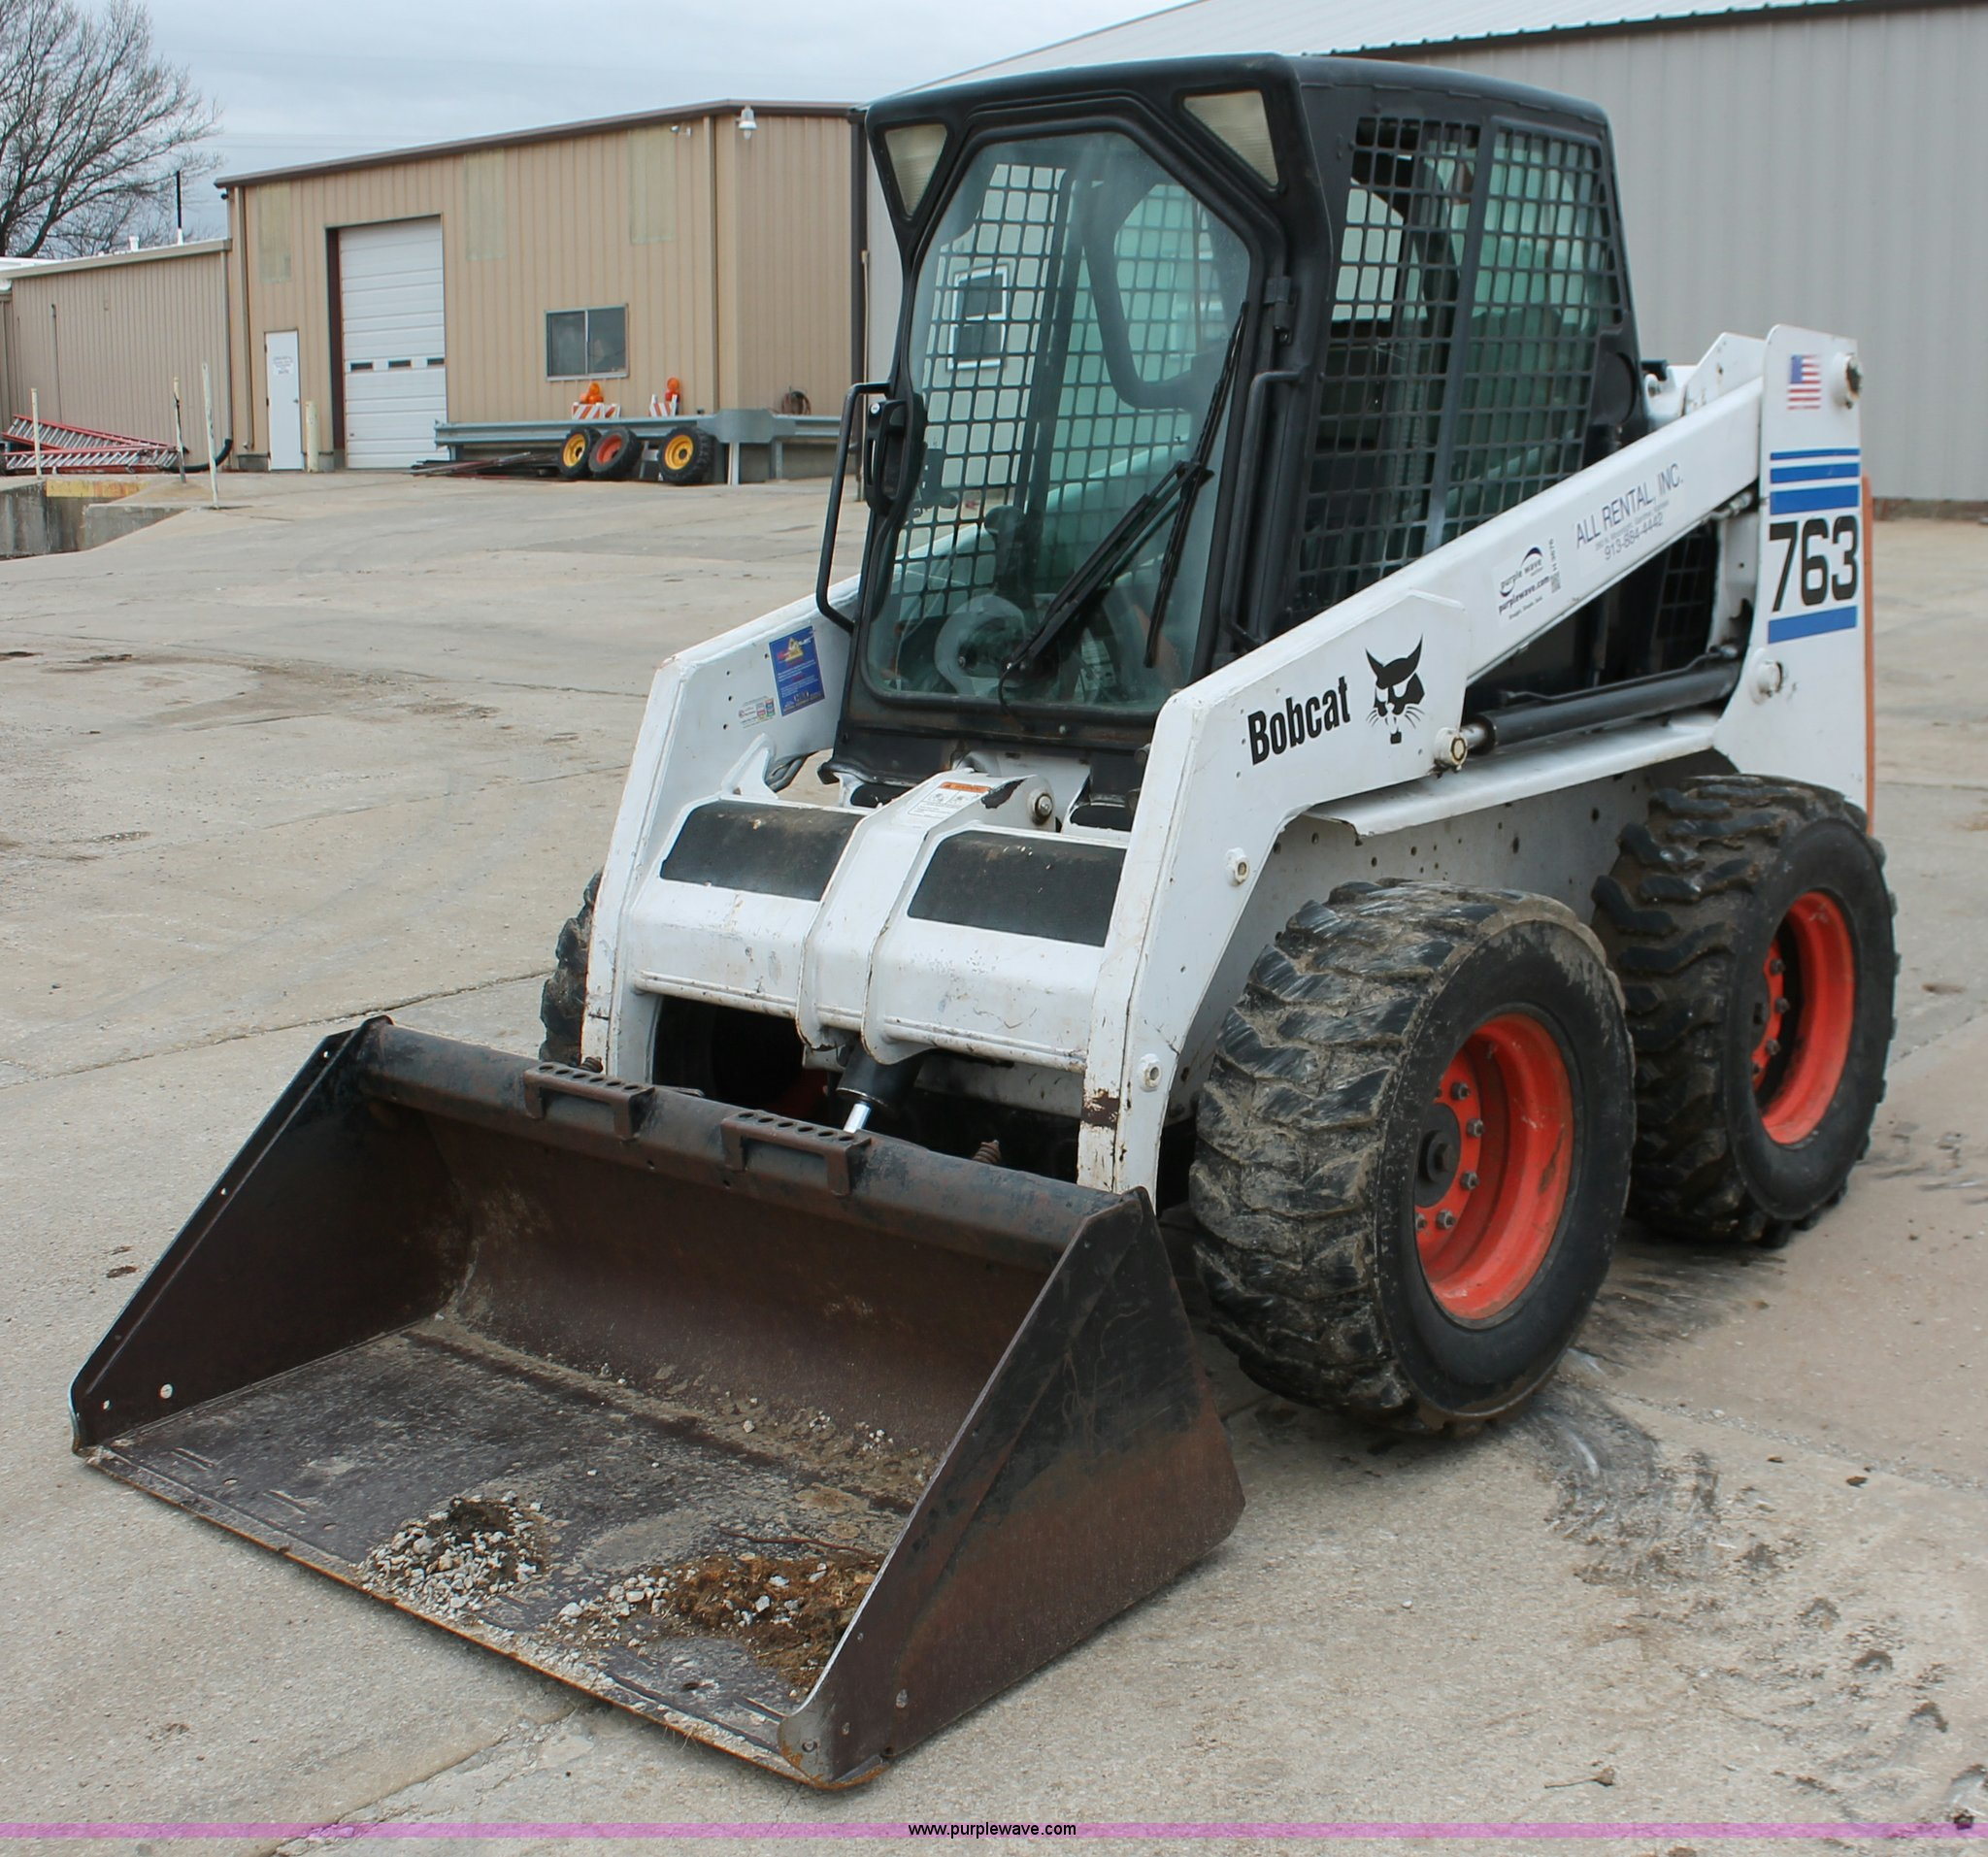 2002 Bobcat 763 Skid Steer Item H3676 Sold May 9 Constr